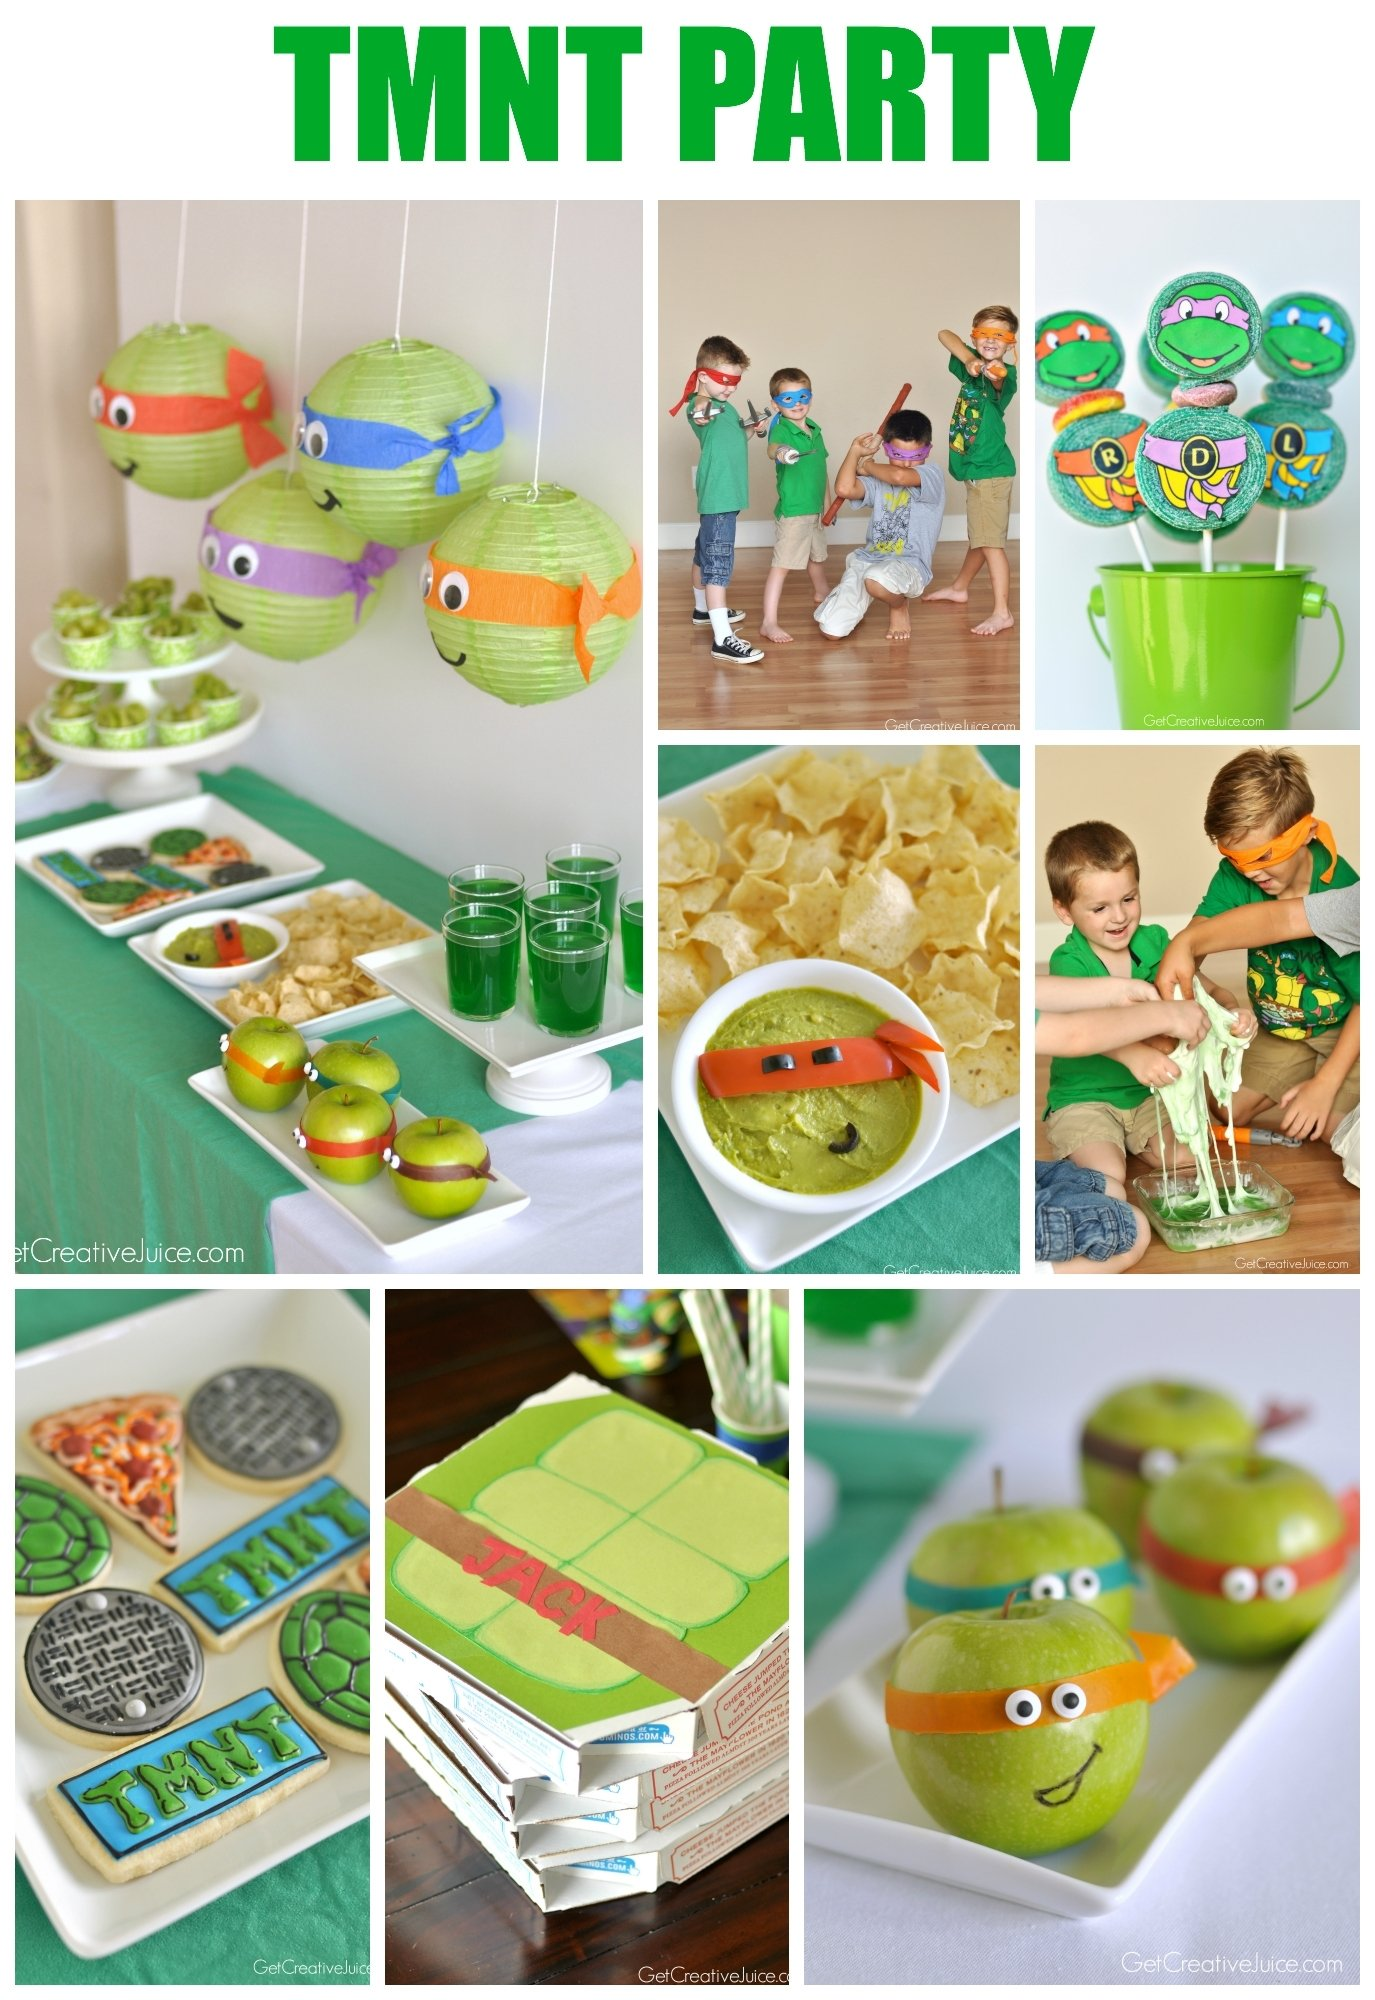 10 Pretty Ninja Turtles Theme Party Ideas tmnt party creative juice 5